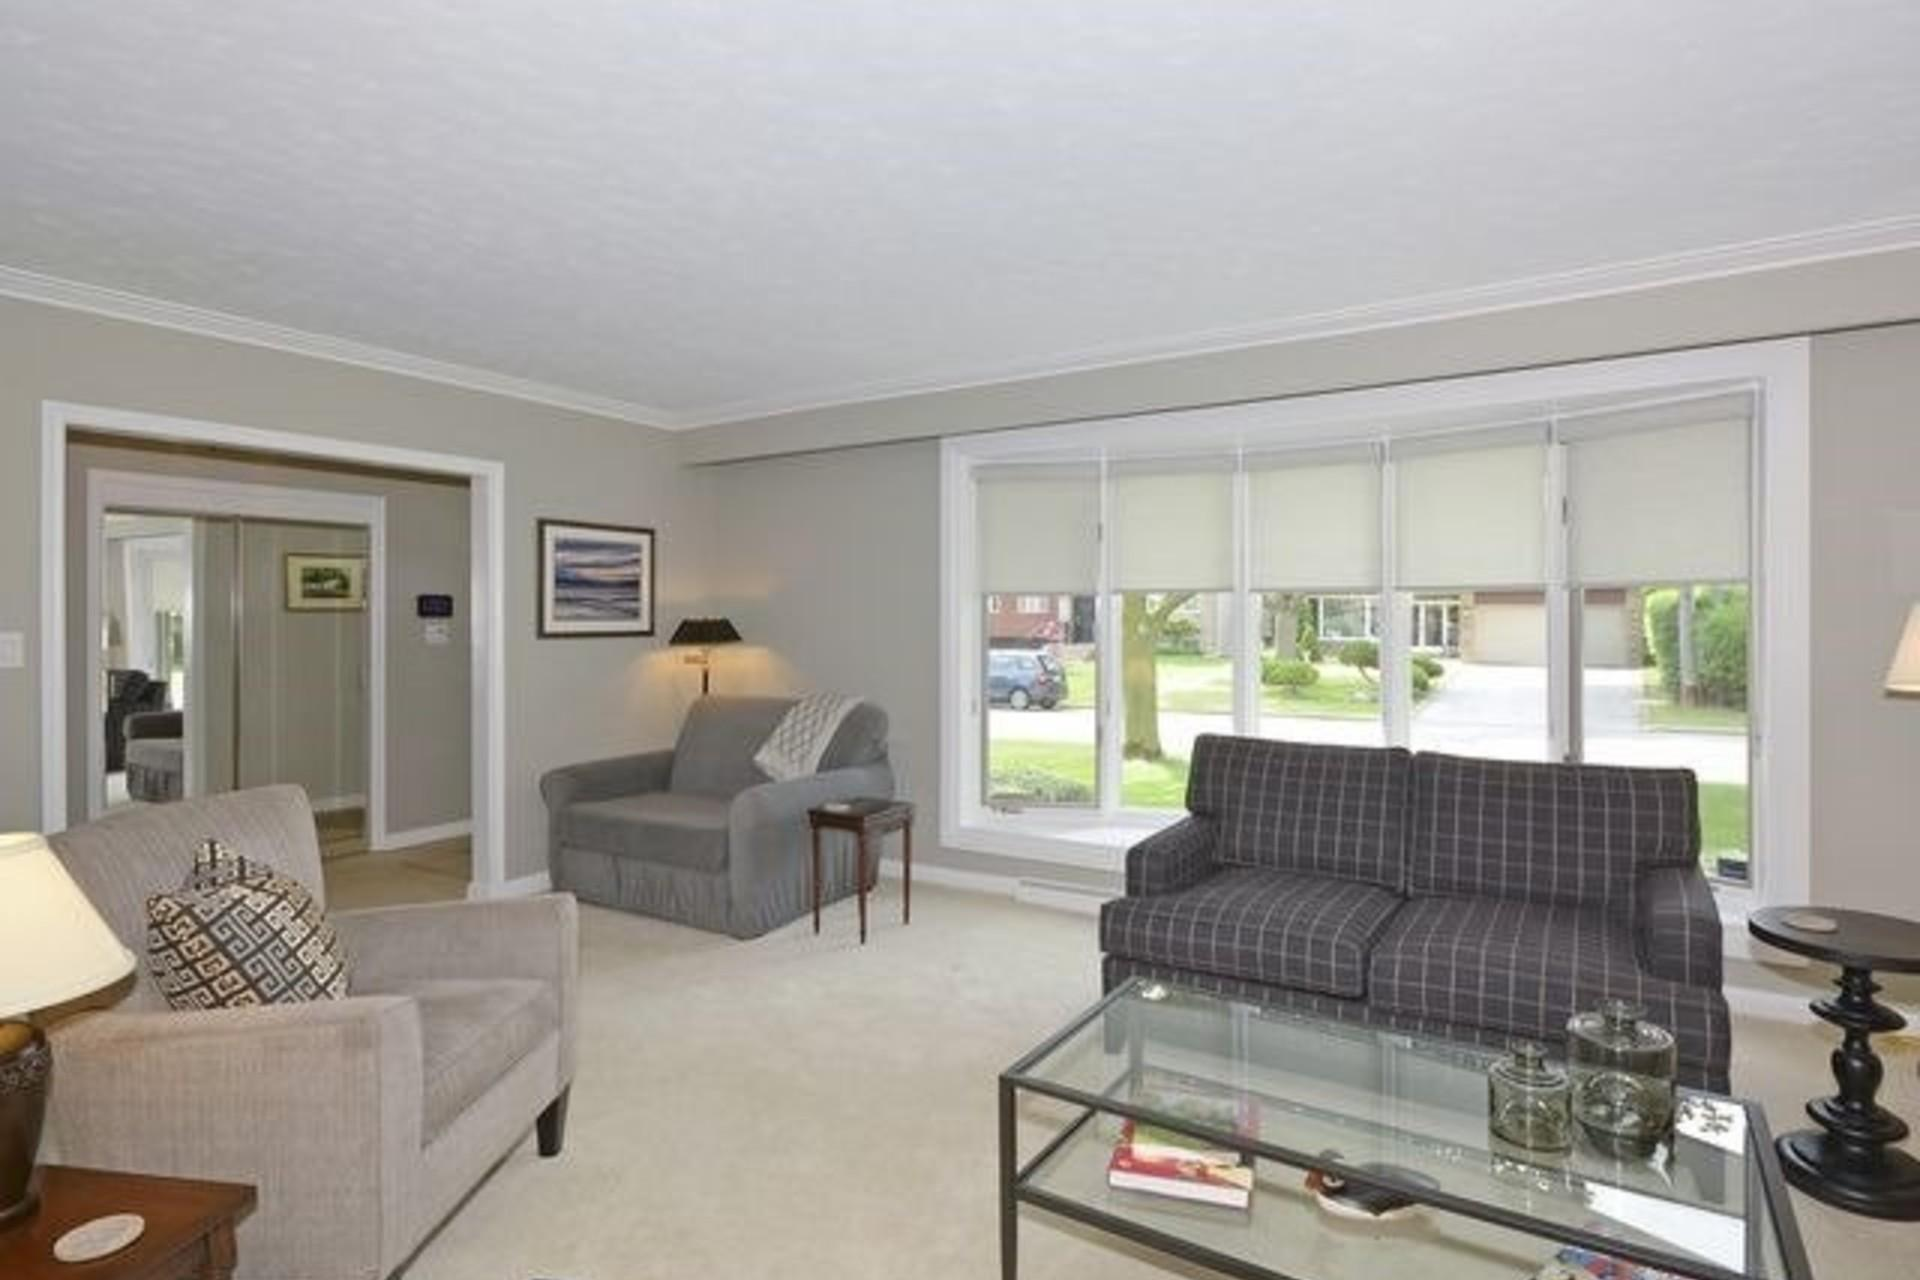 SALE # 463 - 28 Canary Crescent, Bayview Village, Toronto